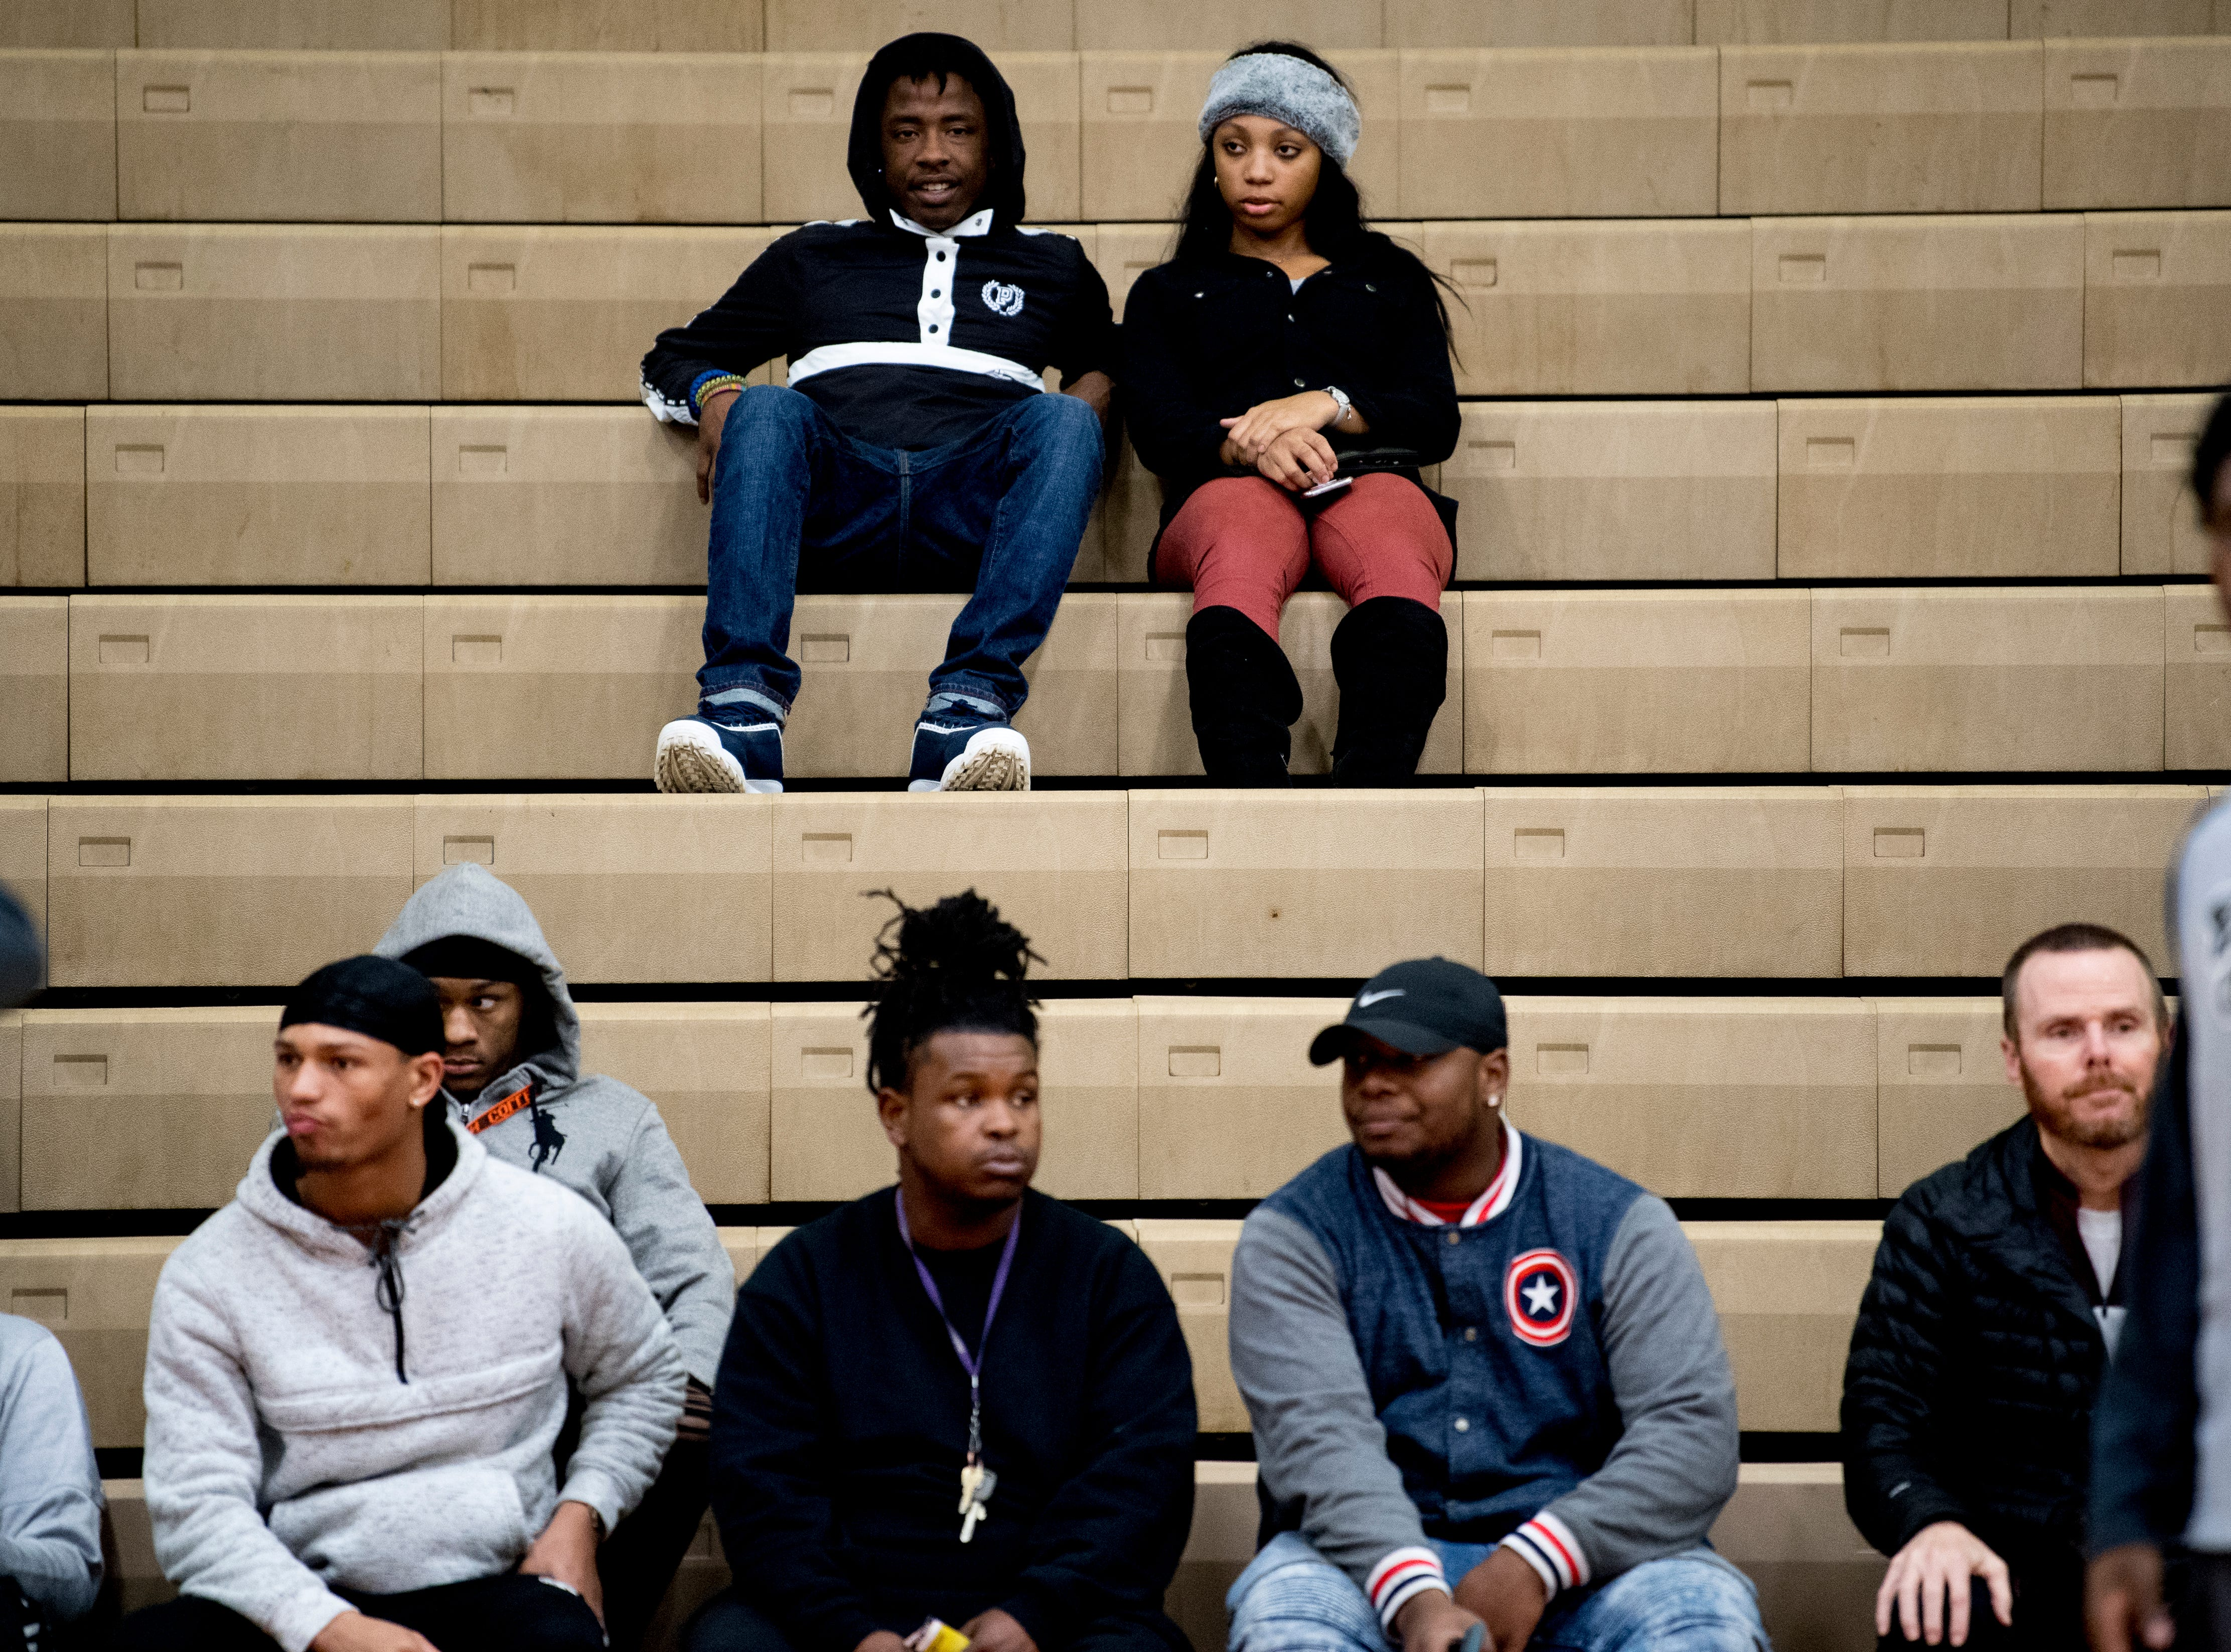 Fans watch from the stands during a game between Austin-East and Alcoa at Austin-East High School in Knoxville, Tennessee on Friday, January 18, 2019.